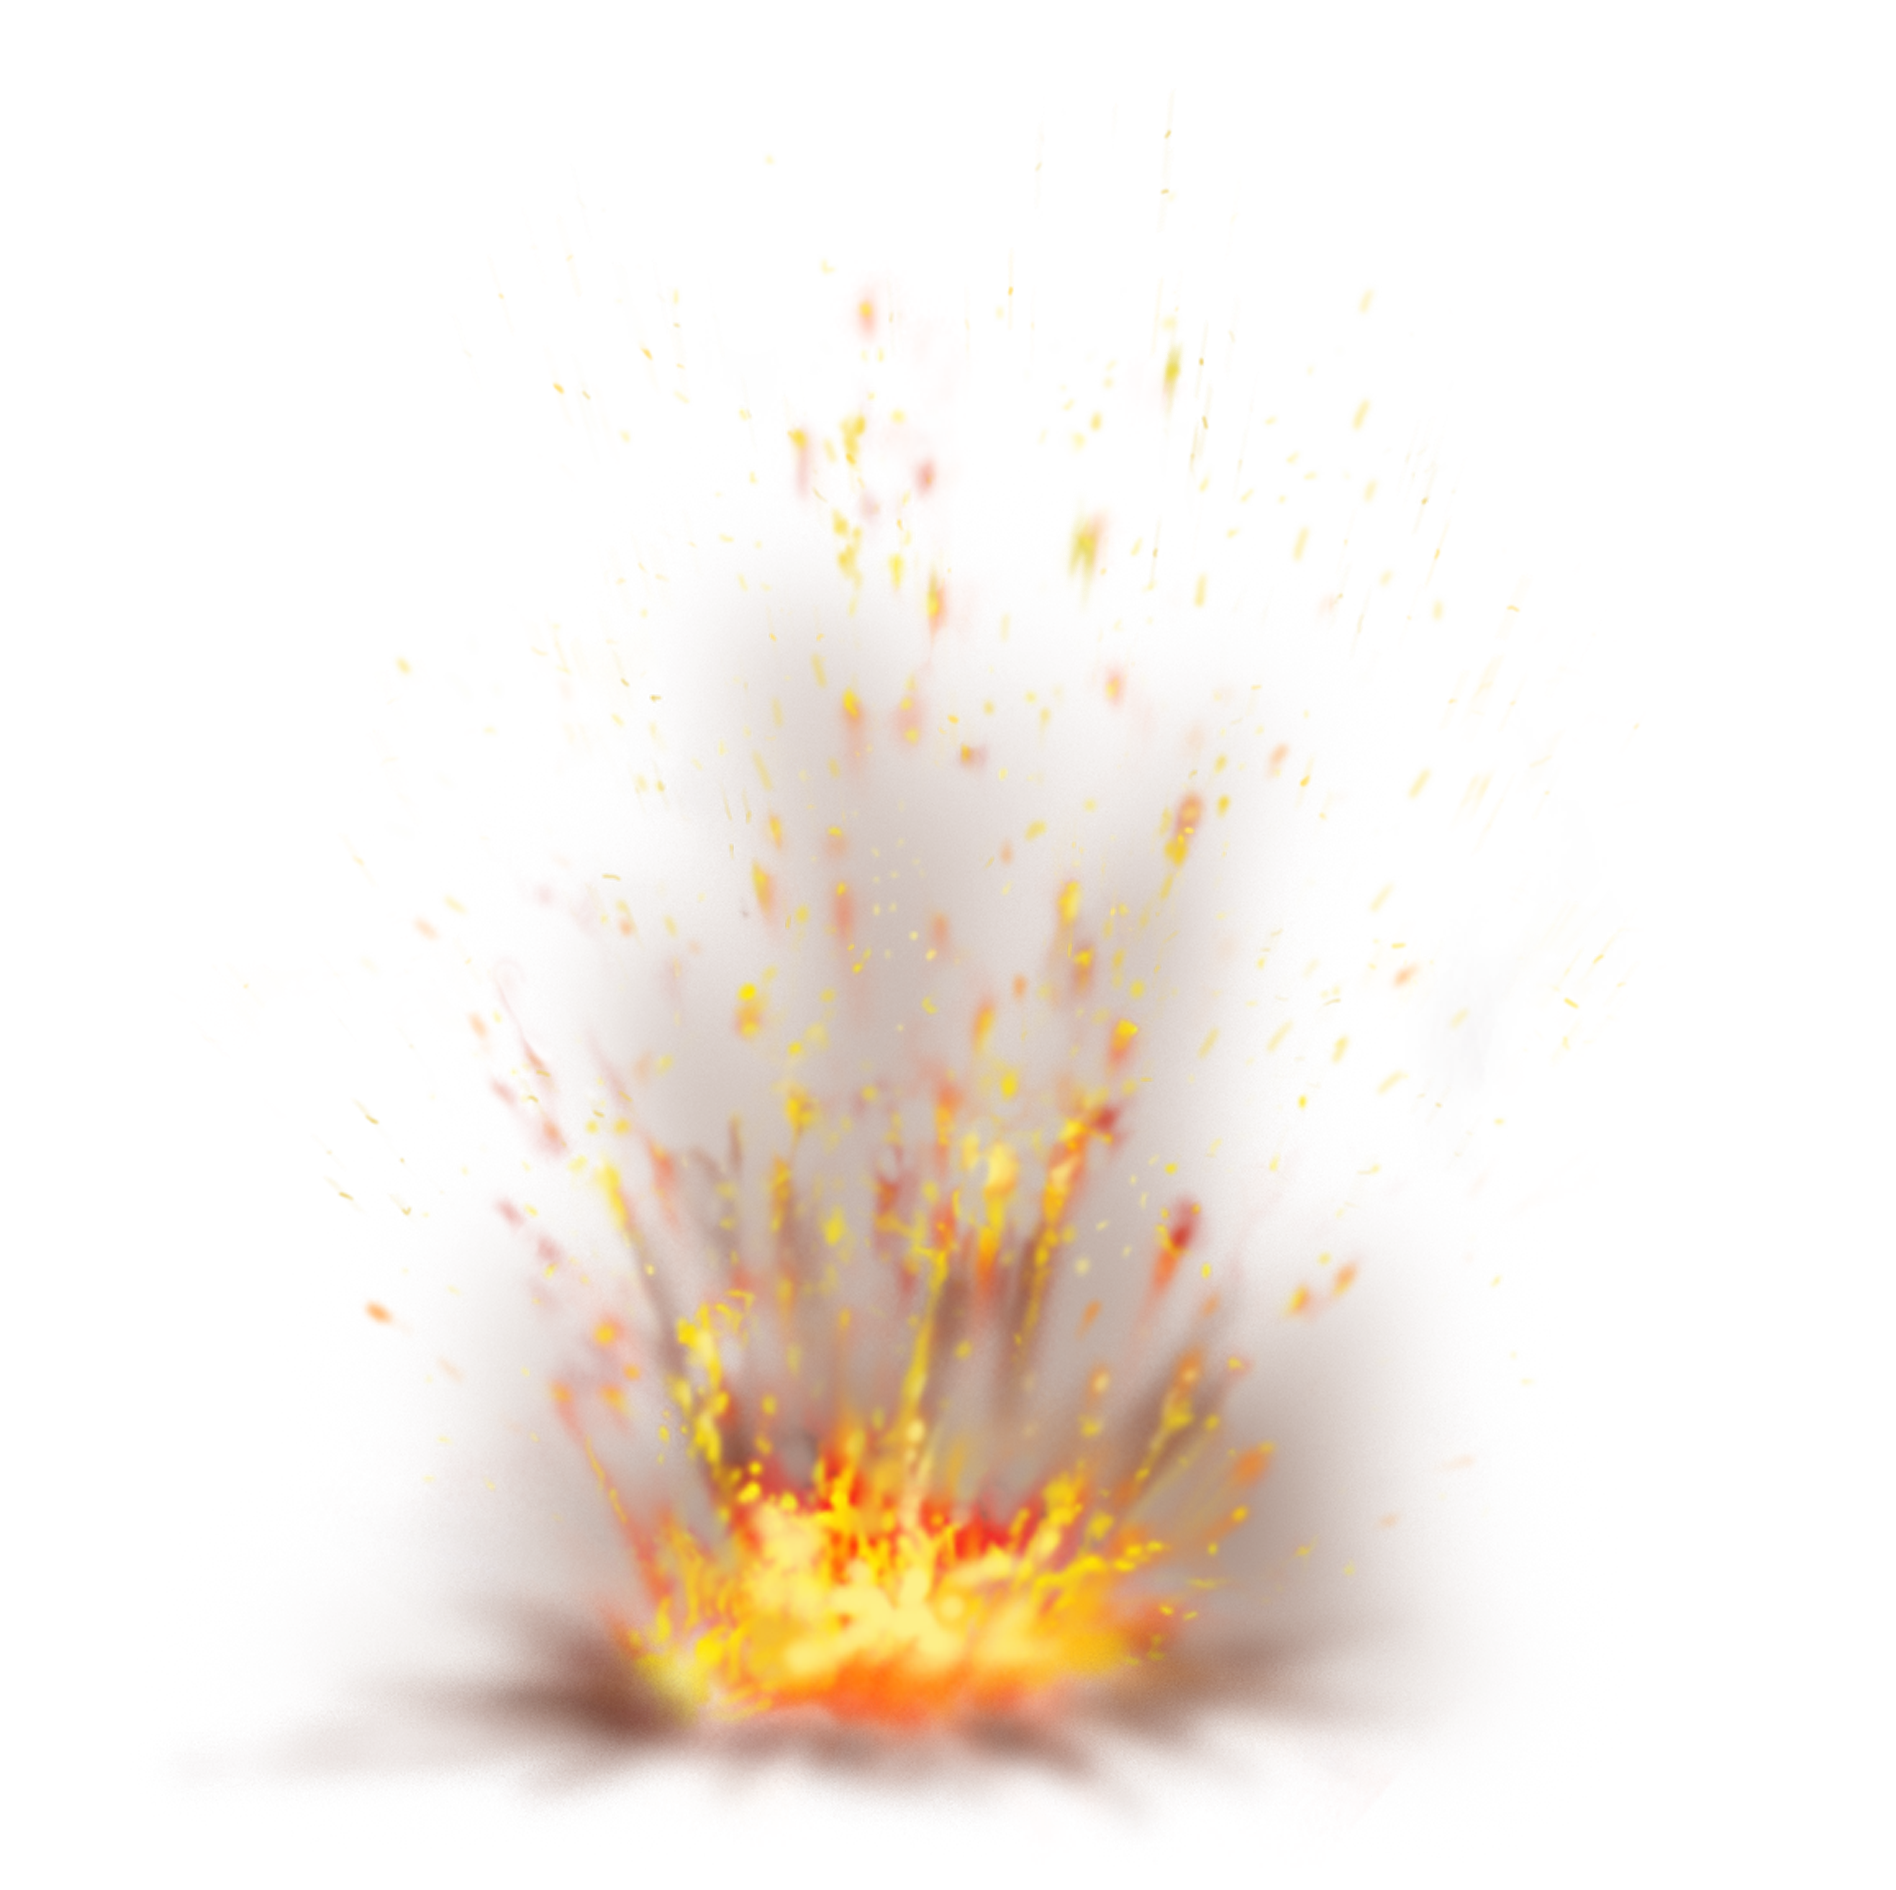 Spark png. Firefox with sparks clipart